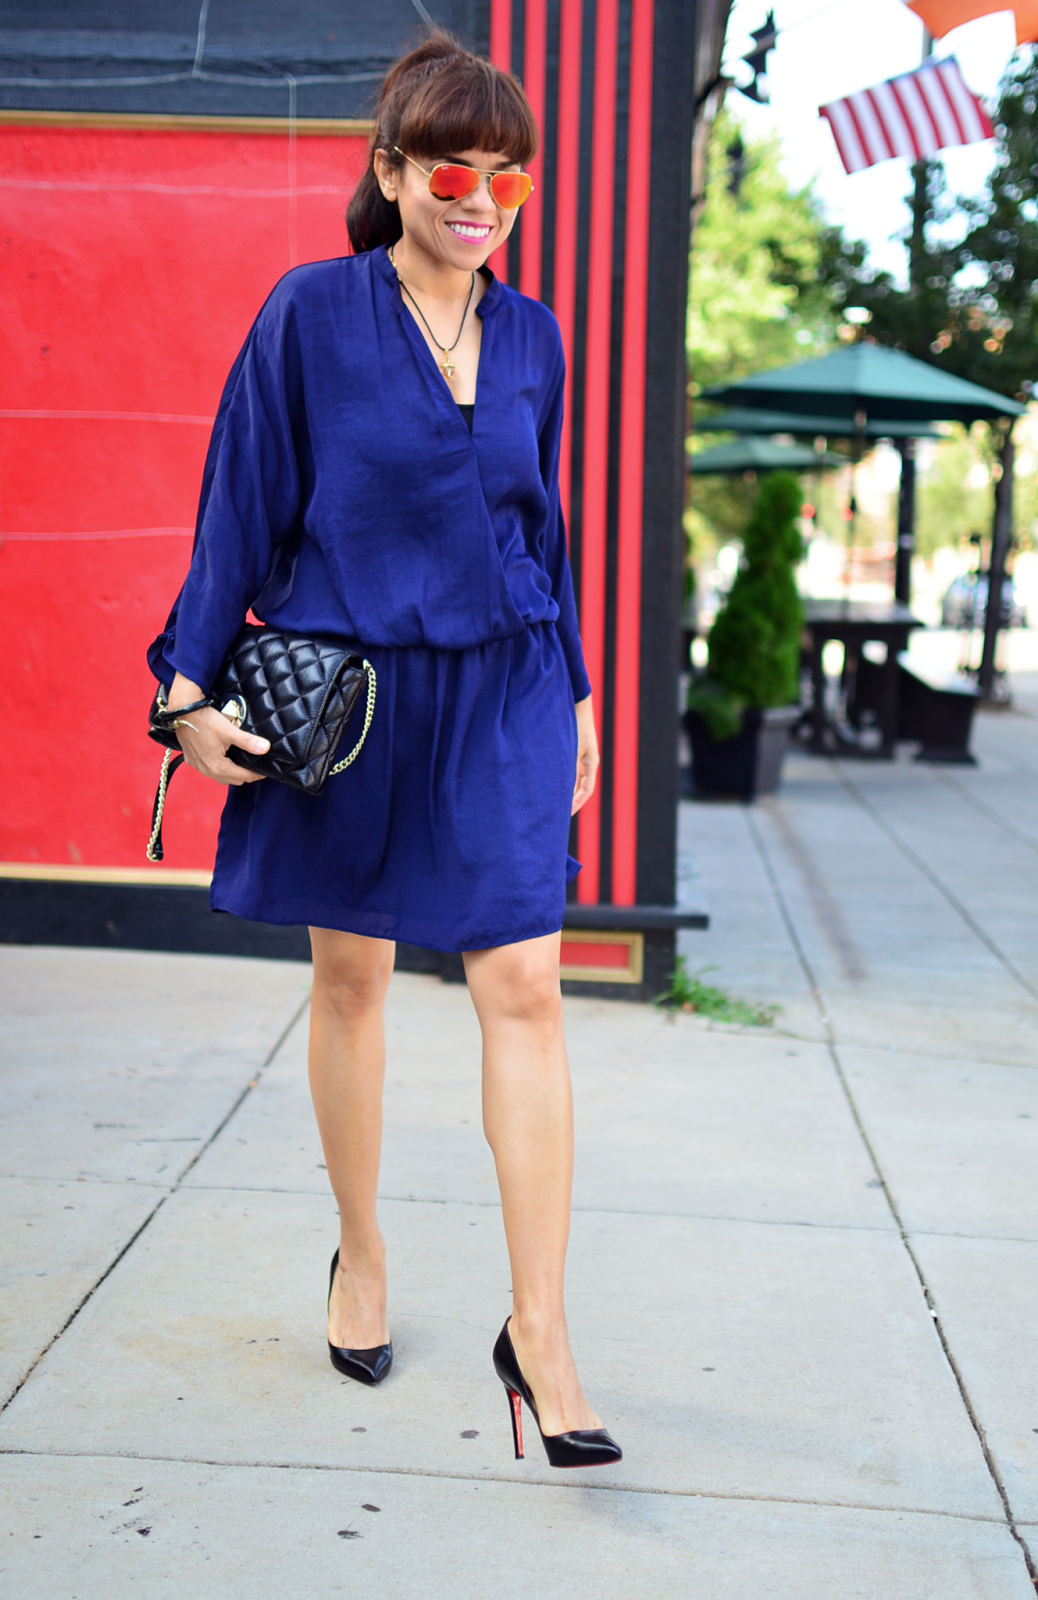 Outfit with cobalt blue